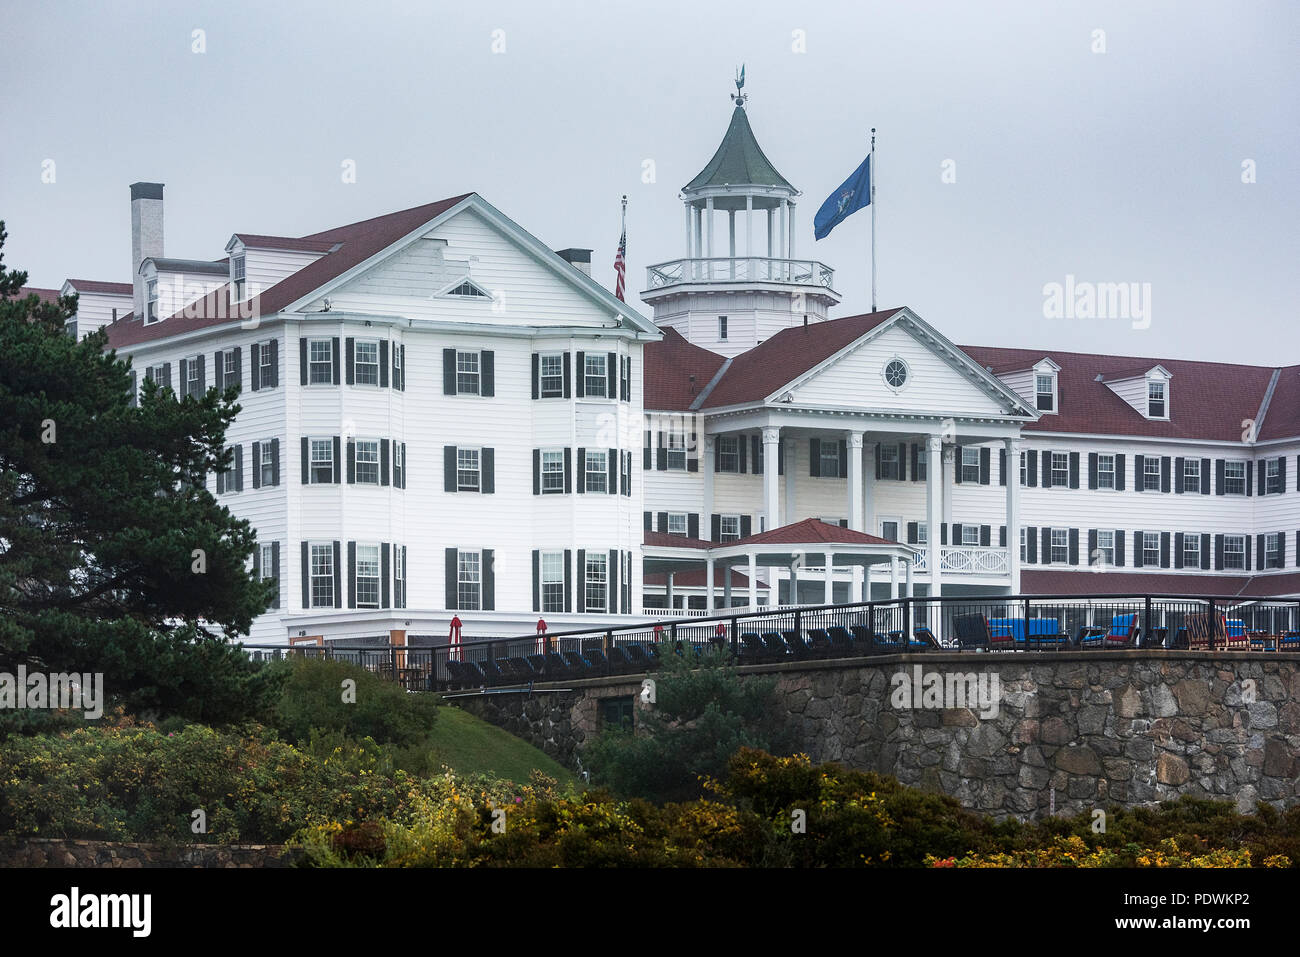 The Colony Hotel, Kennebunkport, Maine, USA. - Stock Image